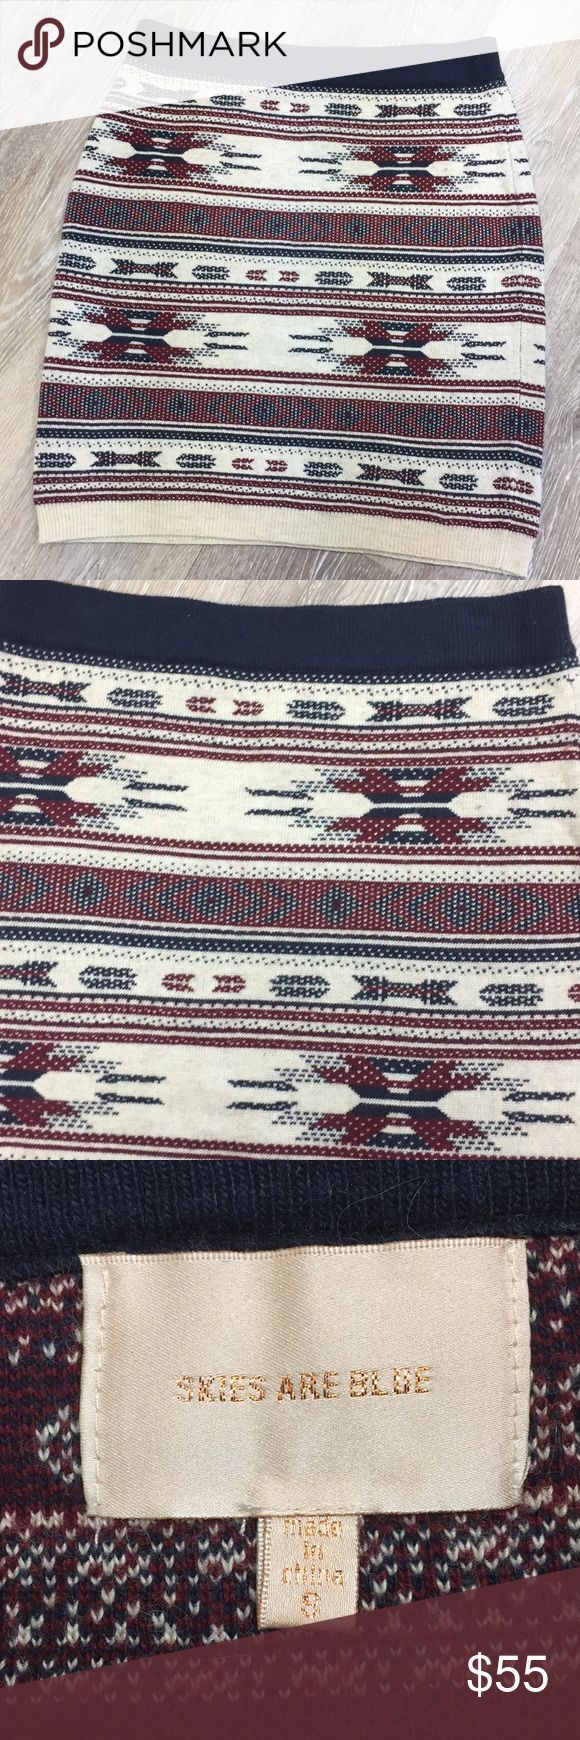 Skies are Blue - navy and wine Sweater Skirt Size Small sweater skirt. Navy blue and wine colored print. By skies are blue. Never worn.   💋Please ask any questions you may have BEFORE purchase.💋  ❤️ Bundle together with other items for the cutest outfit, and best deal!! ❤️  😍 I am ALWAYS open to offers, please just submit your offer with the offer button!!! 😍  🎀As always HAPPY POSHING. 🎀 Skies Are Blue Skirts Mini